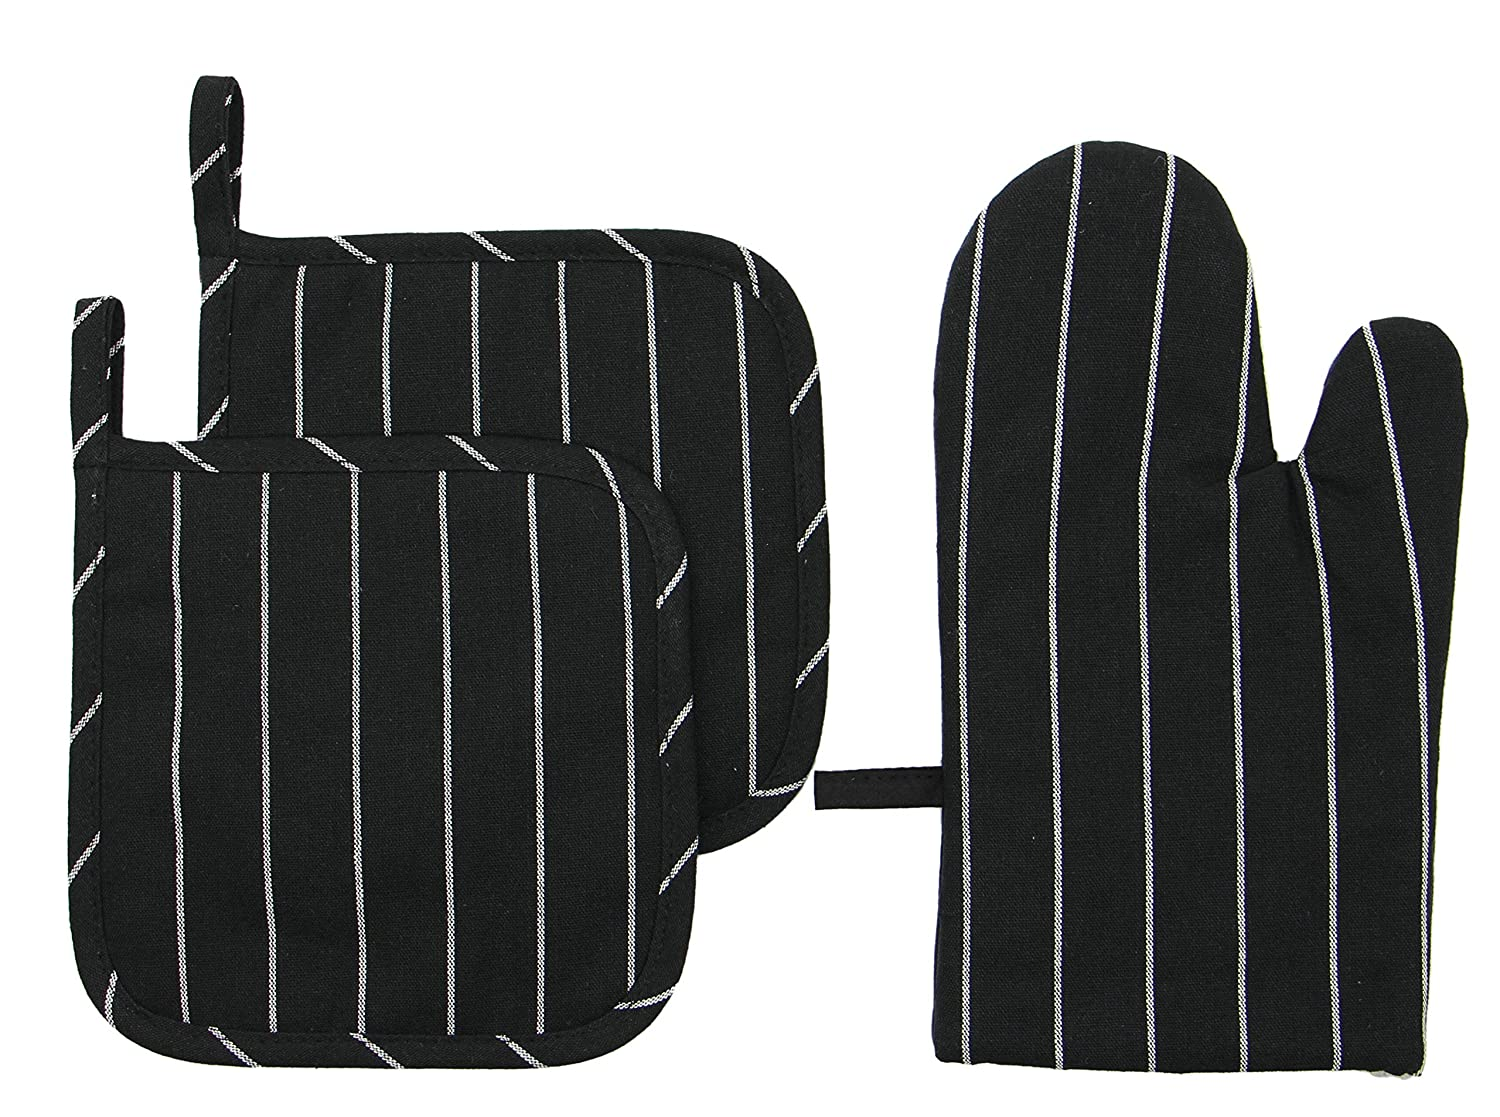 Mia'sDream 100% Cotton Oven Mitt & Pot Holders Kitchen Quilted Oven Gloves,Hot Pan Mat Pads Set for Cooking Grilling Barbeque Baking Heat Resistant Set of 3 (Black Stripes)